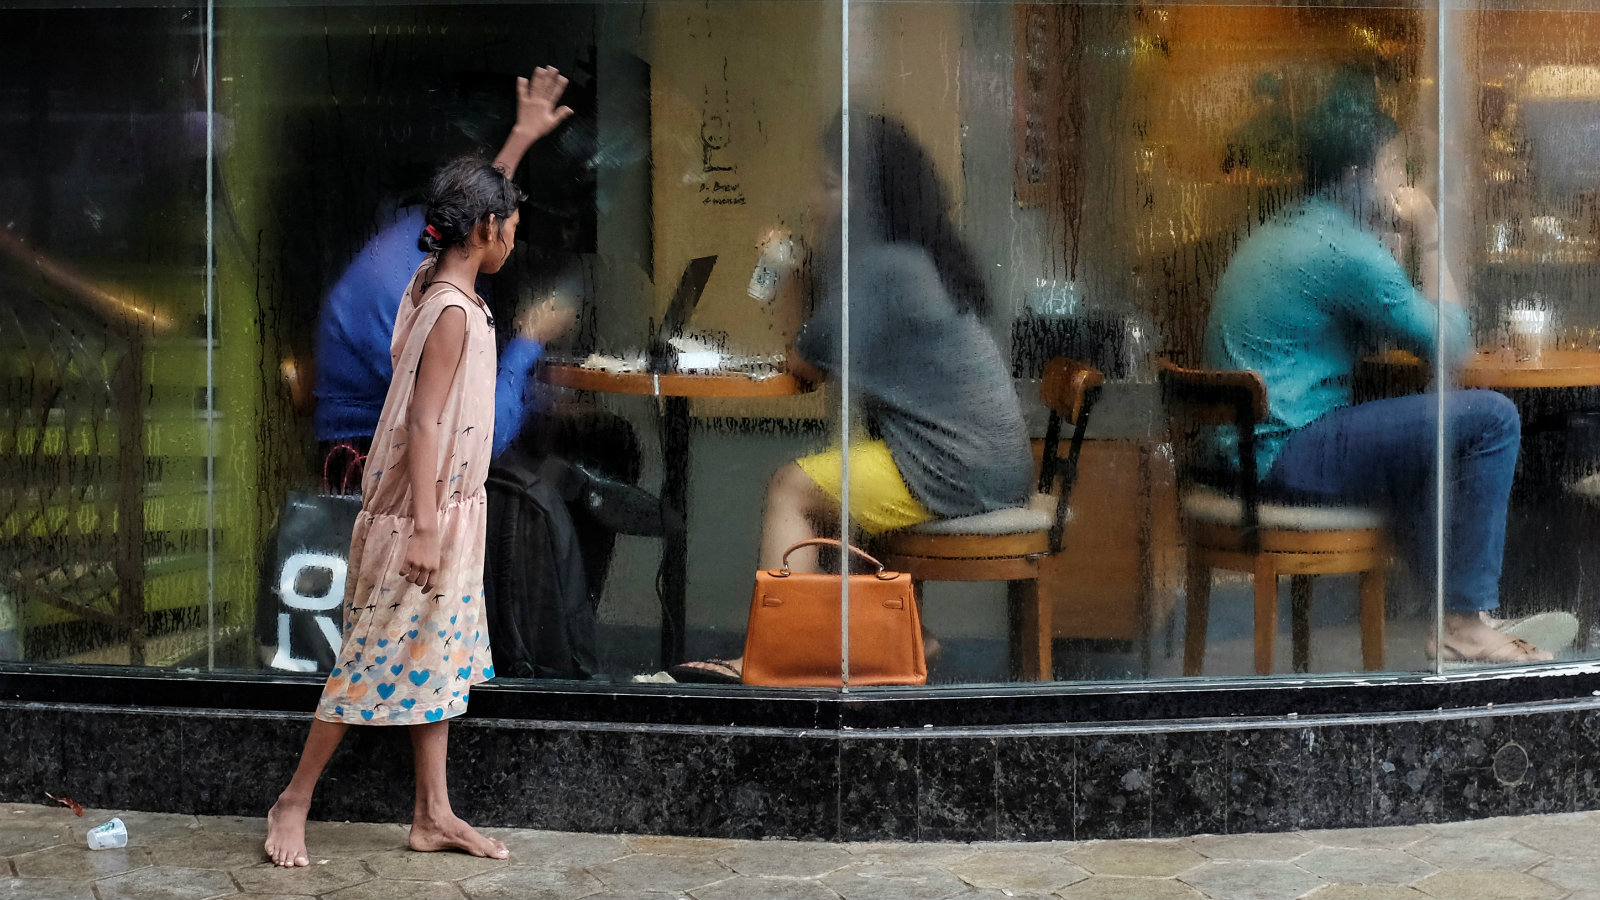 A homeless girl asks for alms outside a coffee shop in Mumbai, India, June 24, 2016.